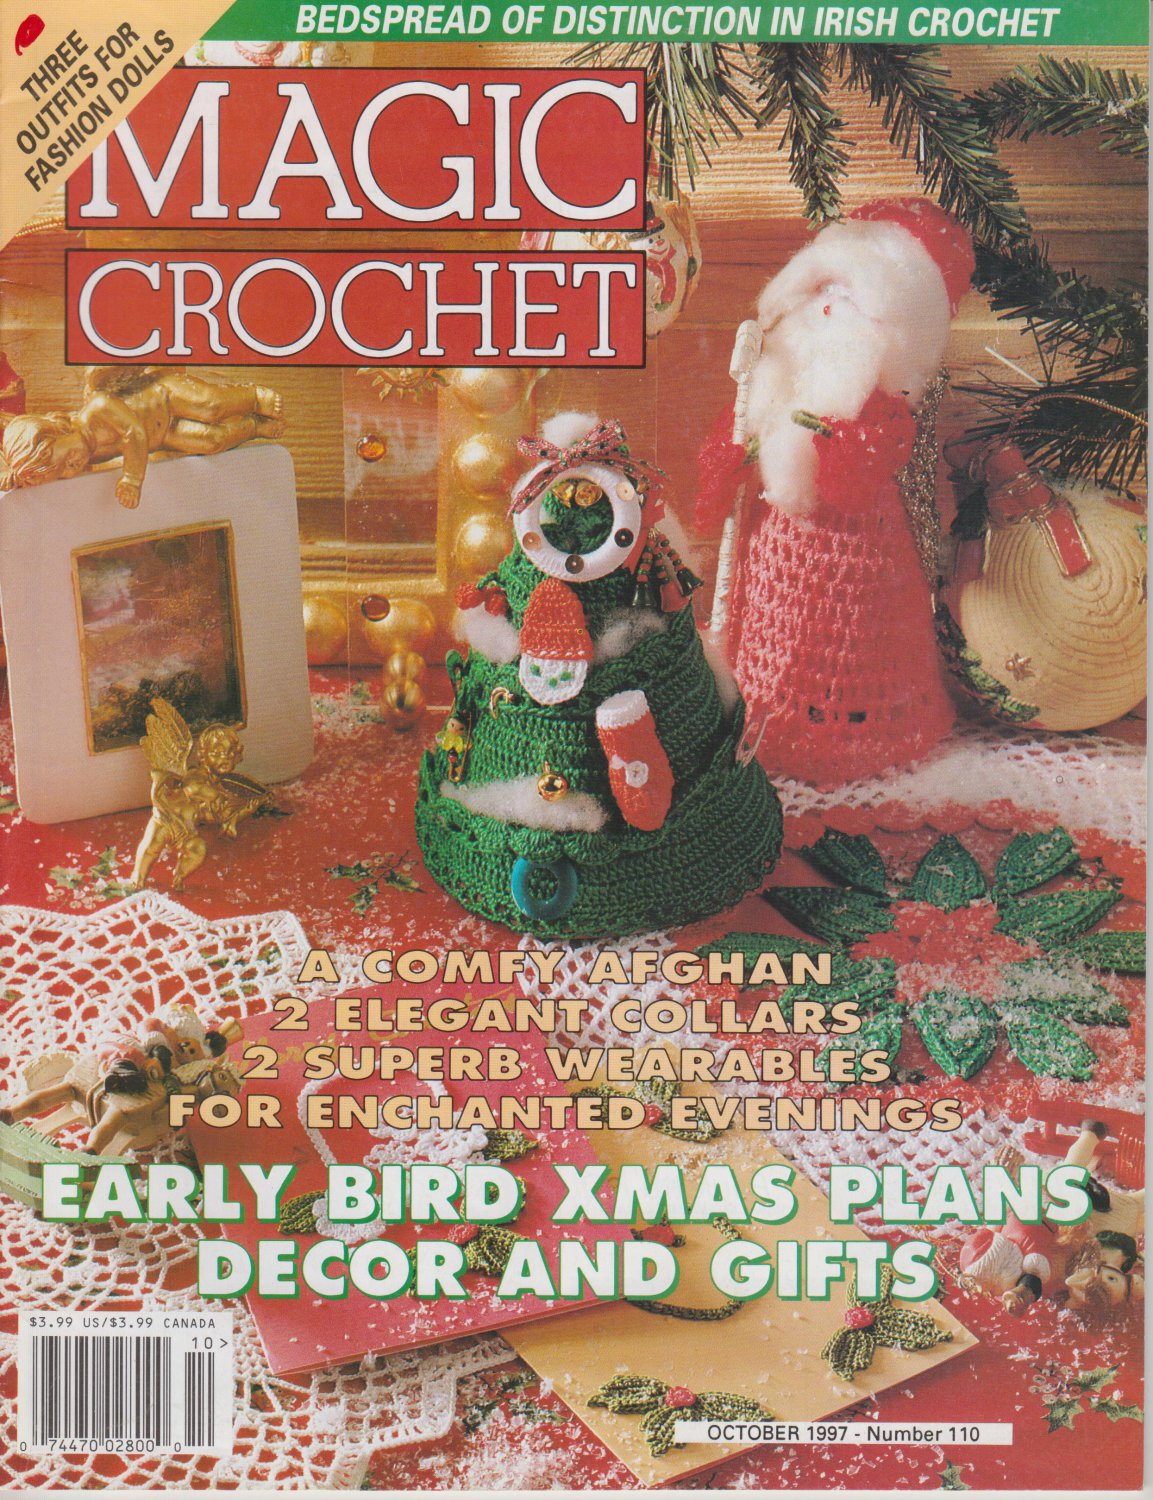 Magic Crochet Magazine Issue October 1997 Number 110